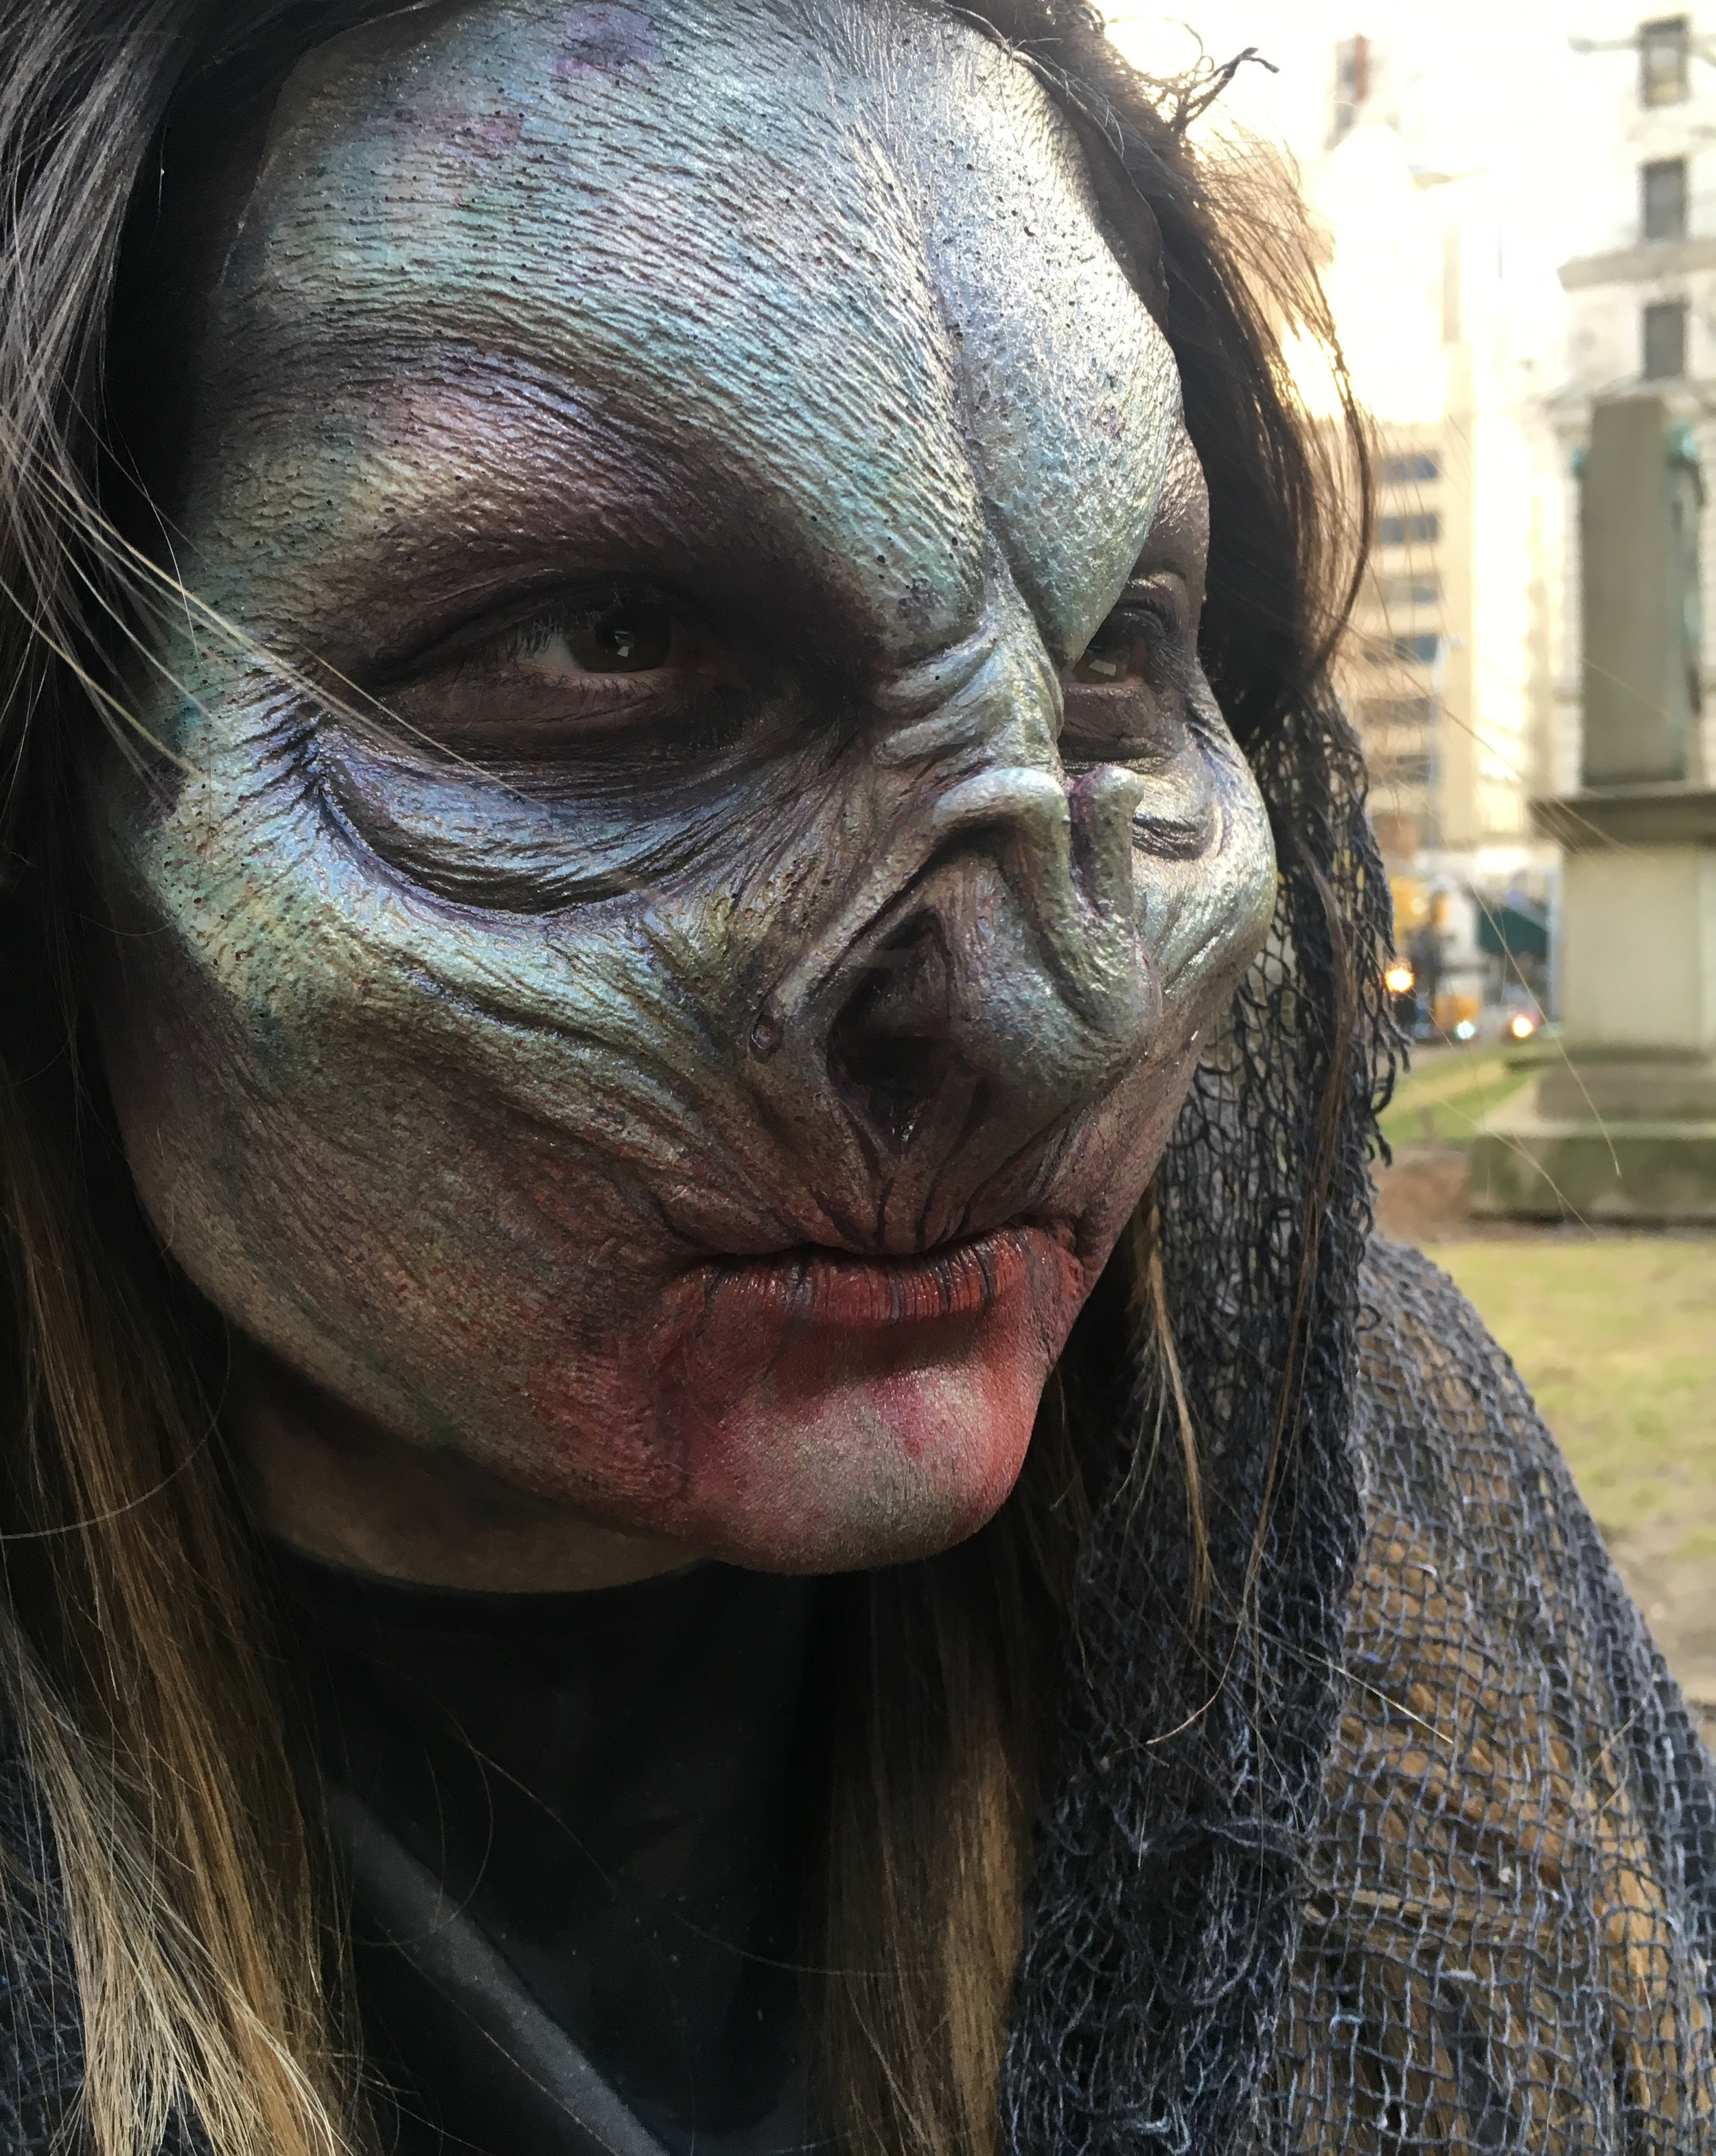 Prosthetic and airbrushed character